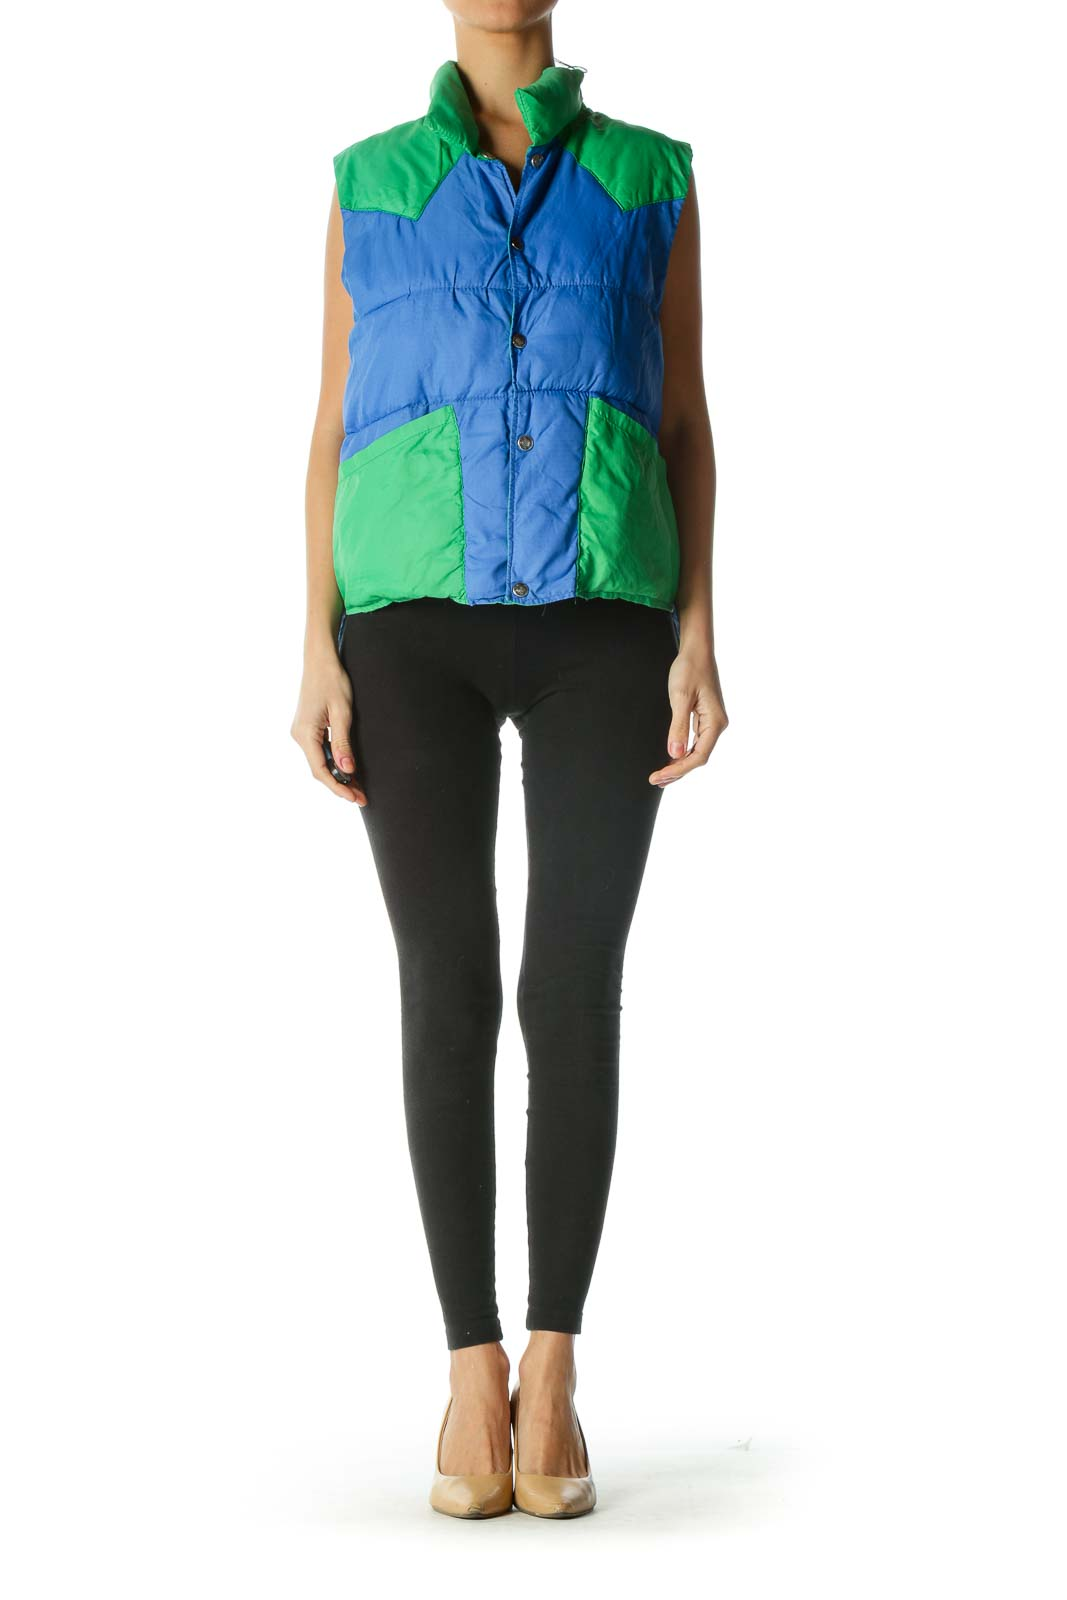 Blue and Green Colorblock Vest